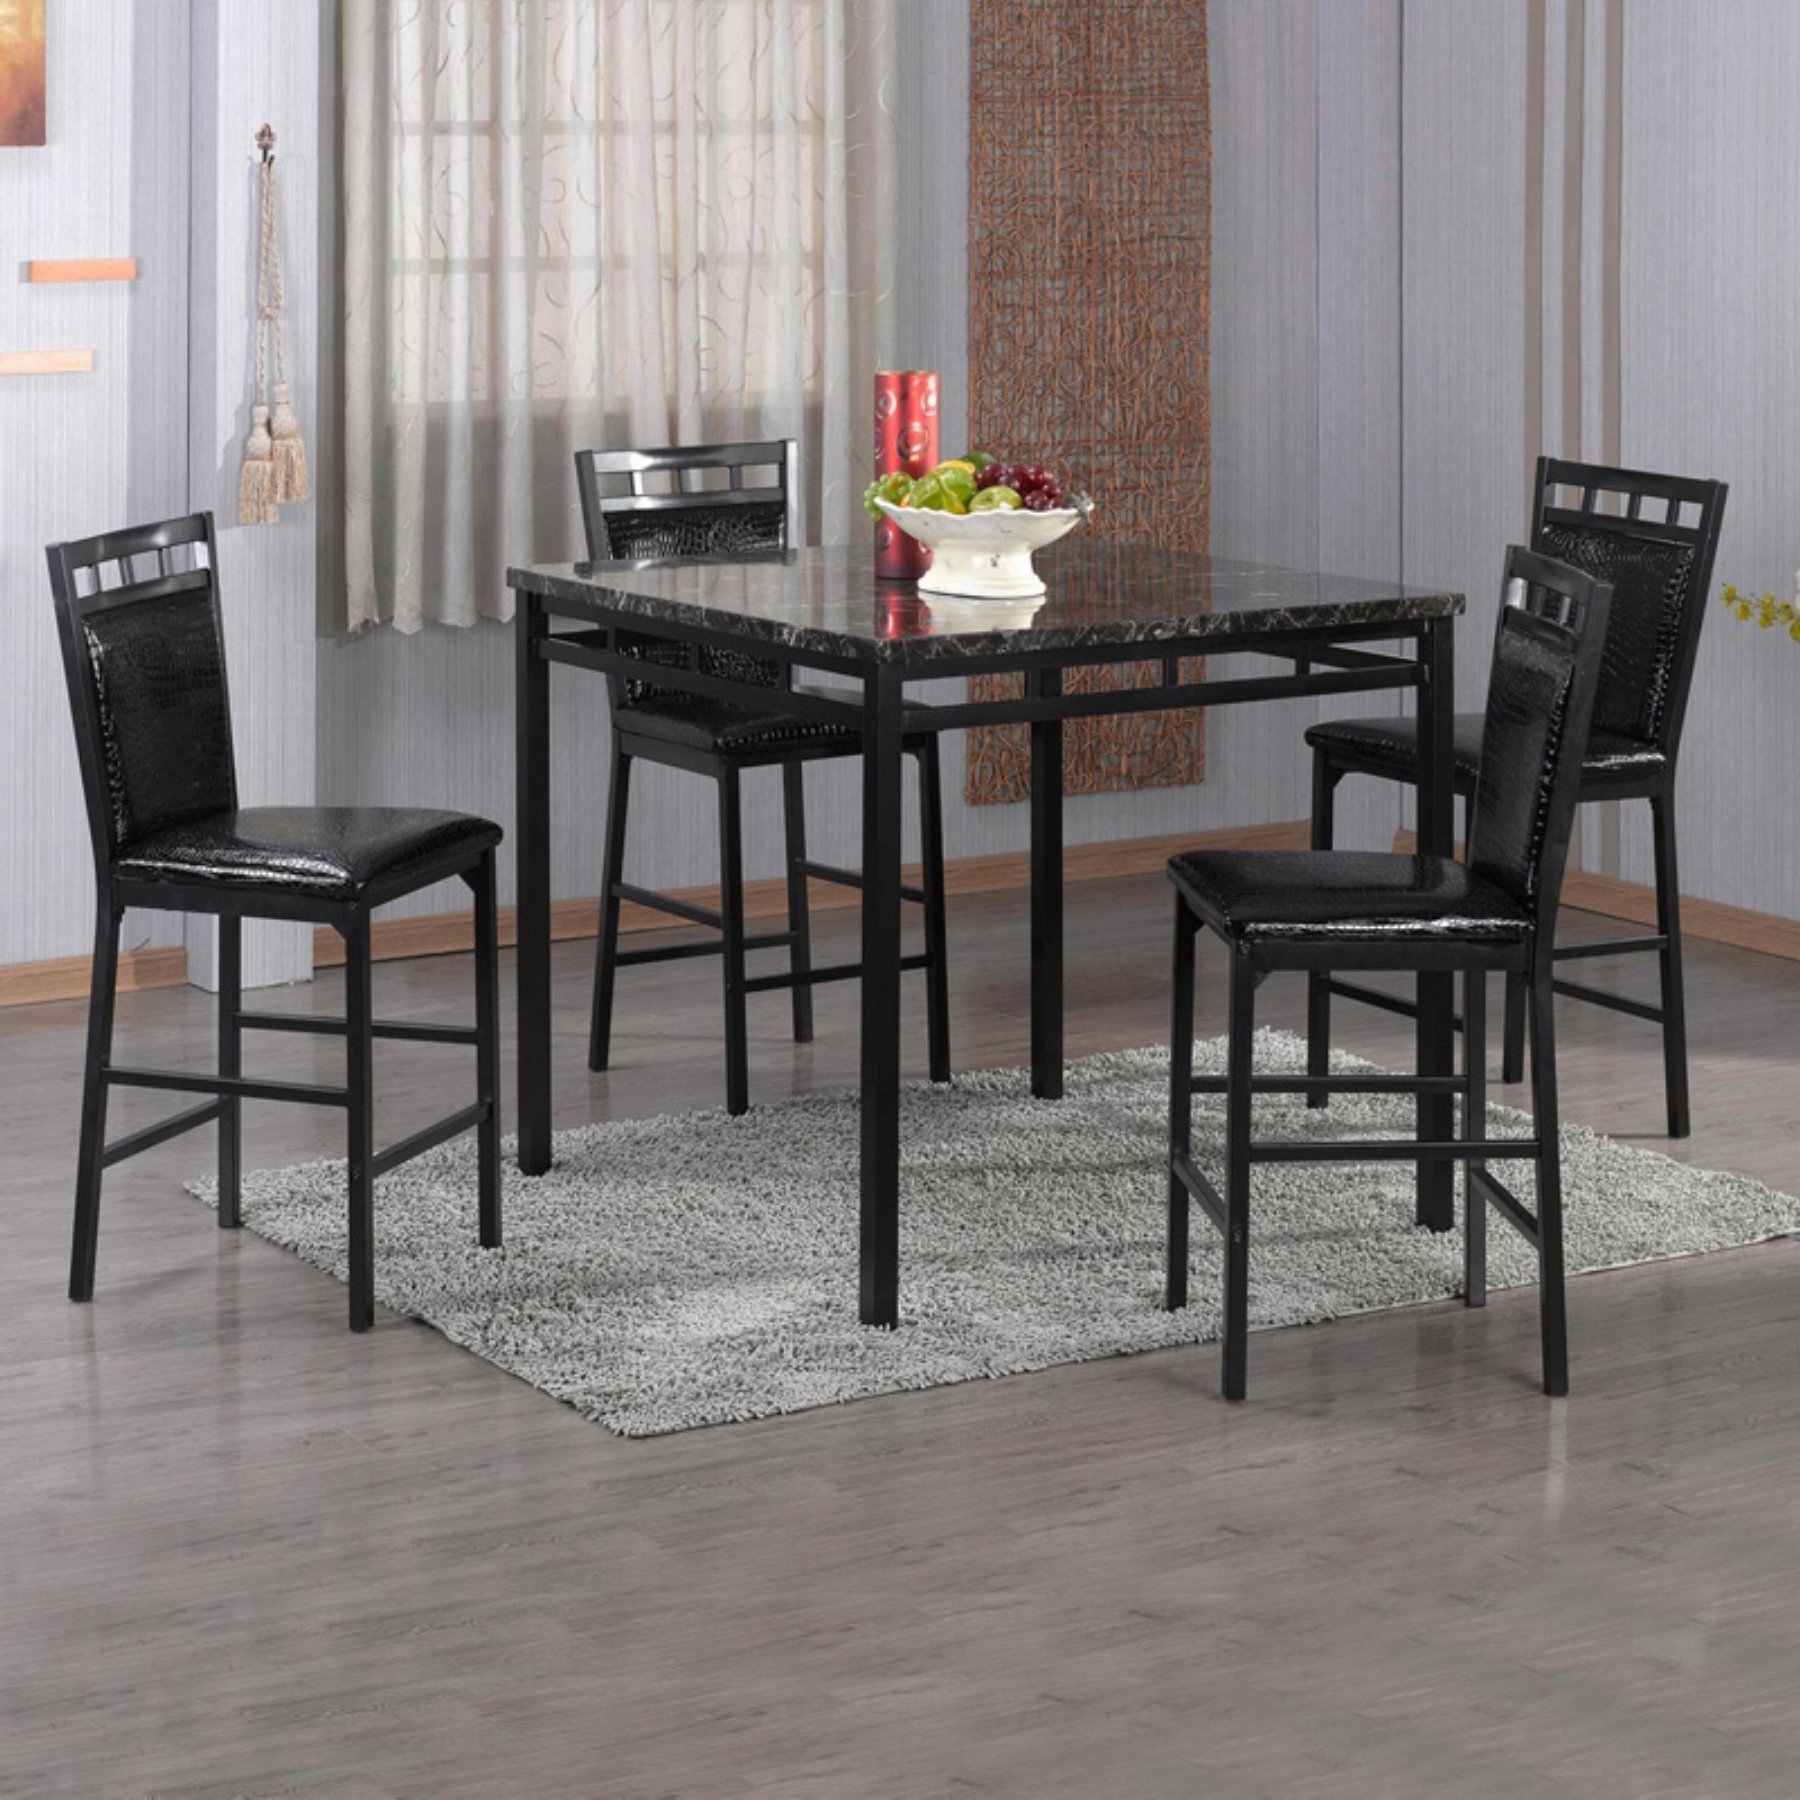 Home Source Industries 5 Piece Counter Height Dining Table Set In Within Most Up To Date Valencia 5 Piece Round Dining Sets With Uph Seat Side Chairs (View 12 of 25)